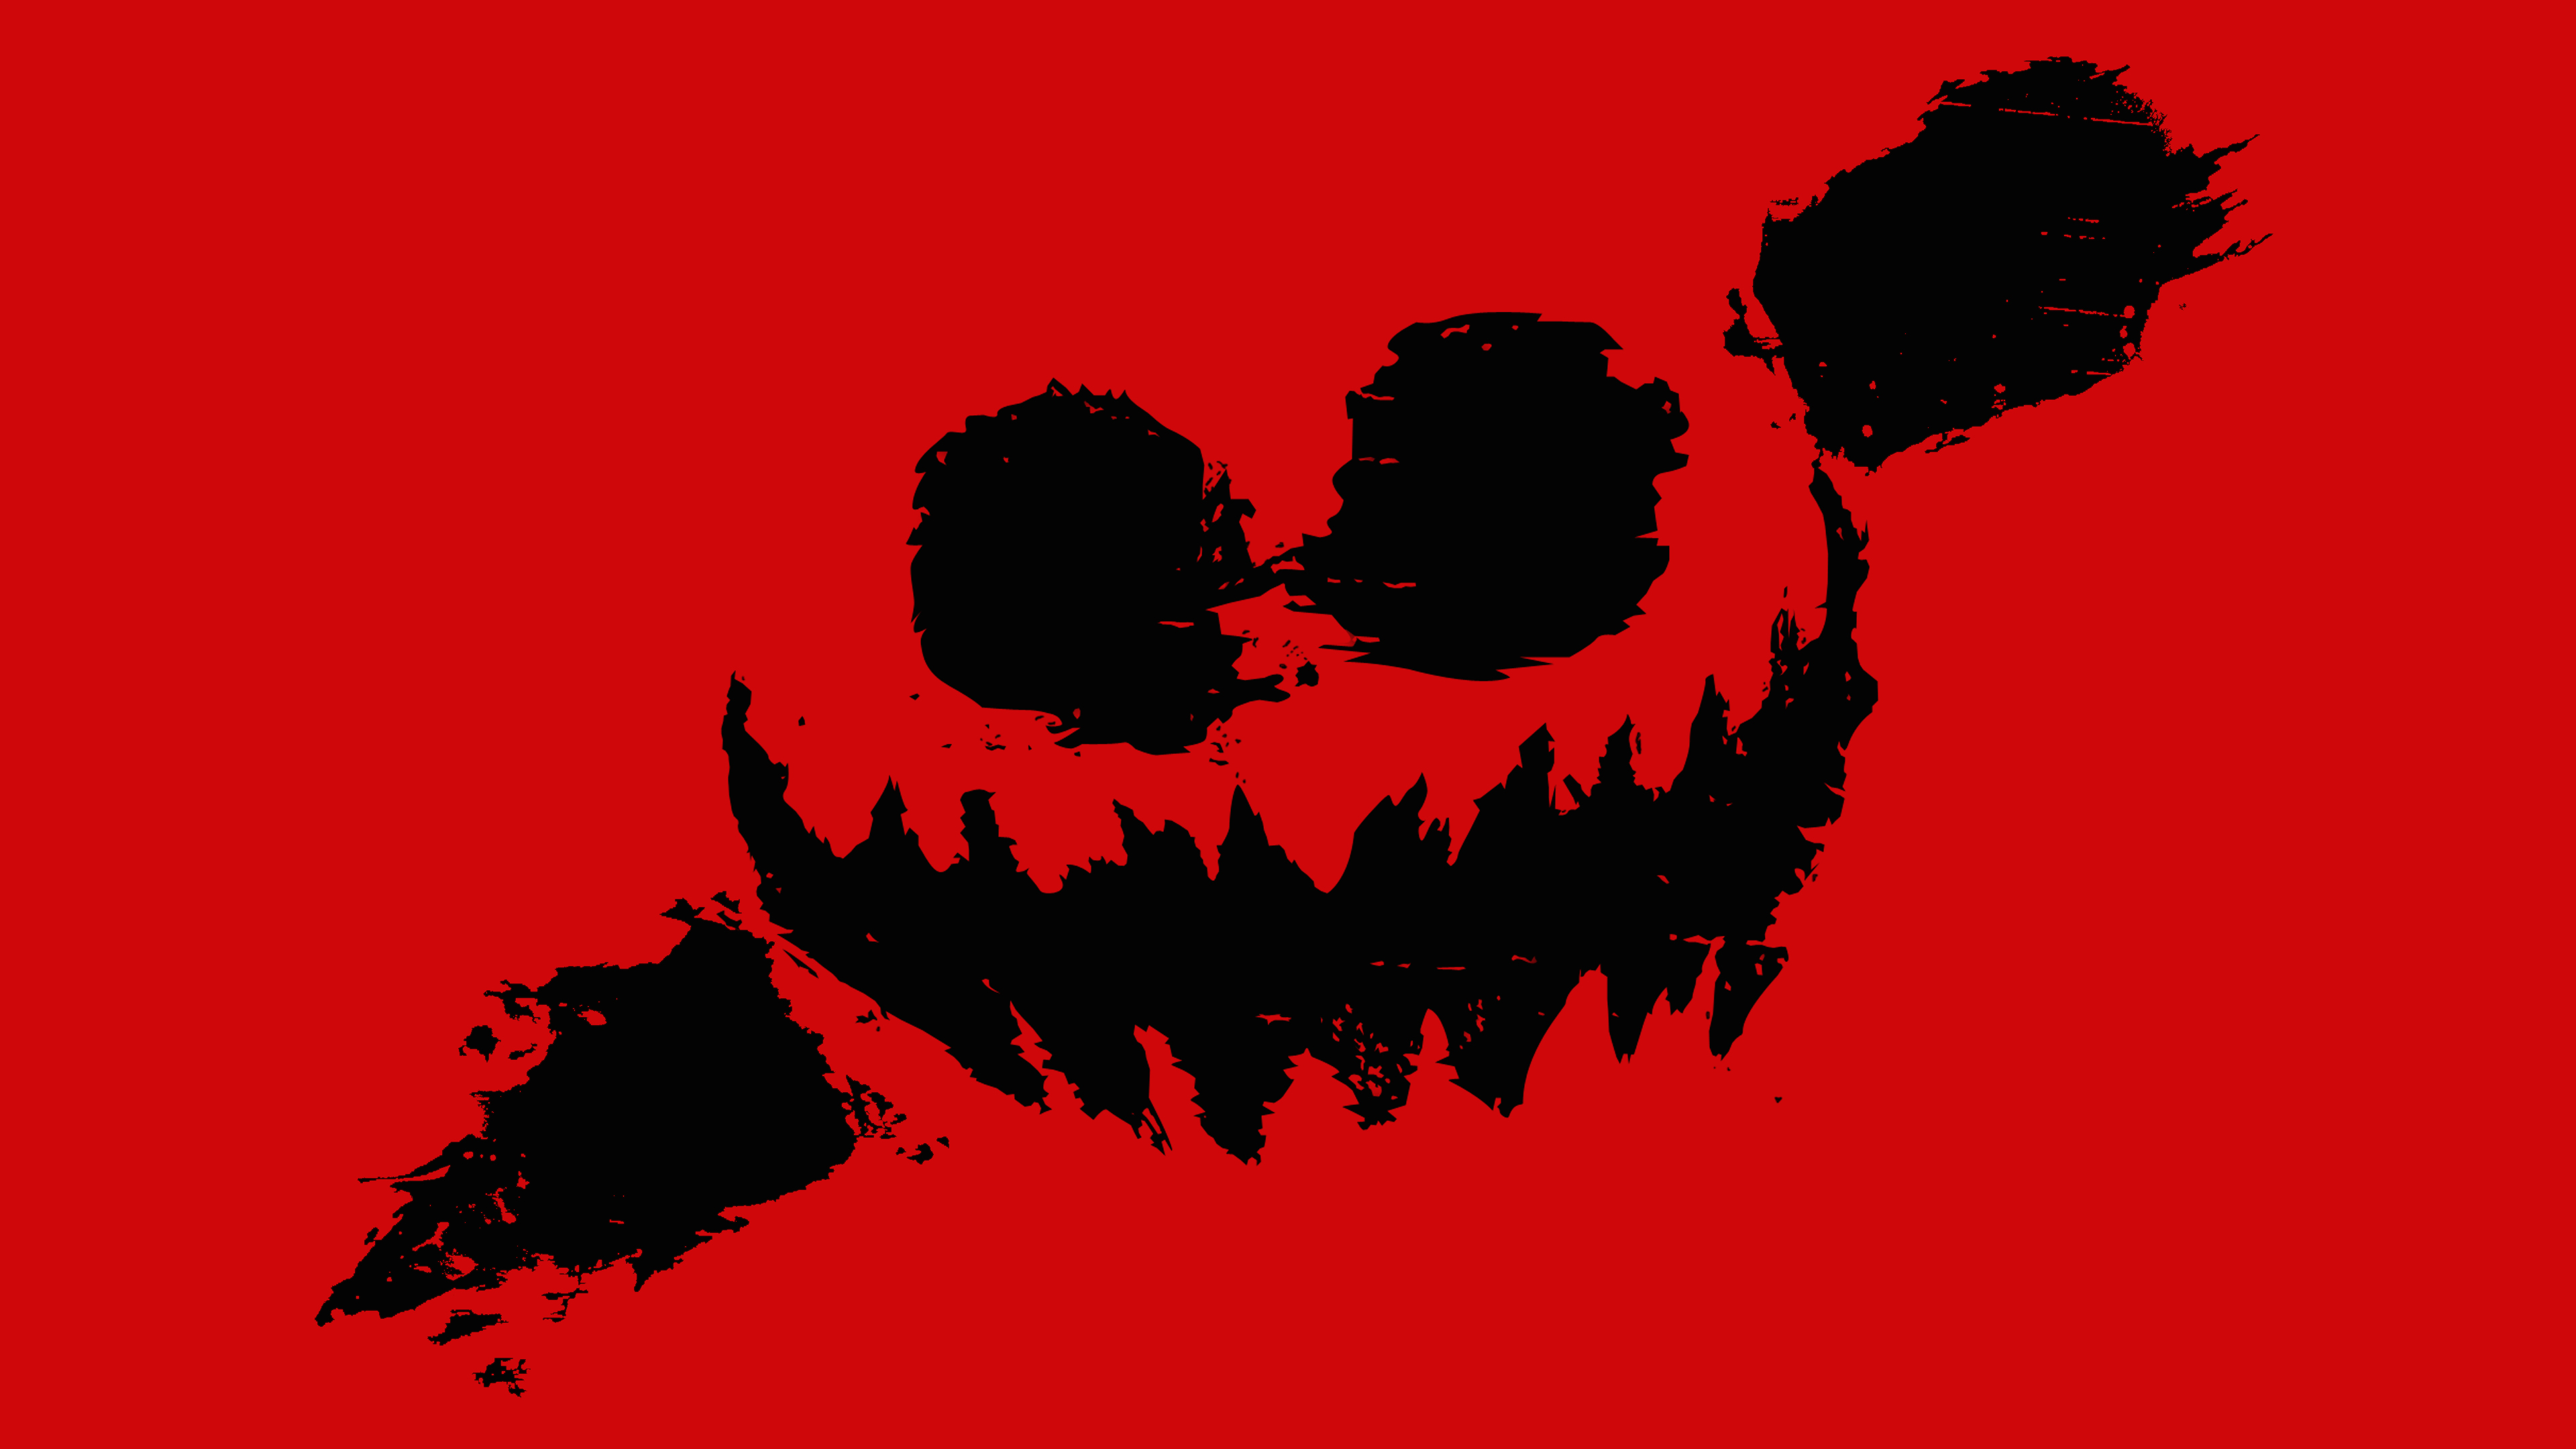 Images of Knife Party   3840x2160